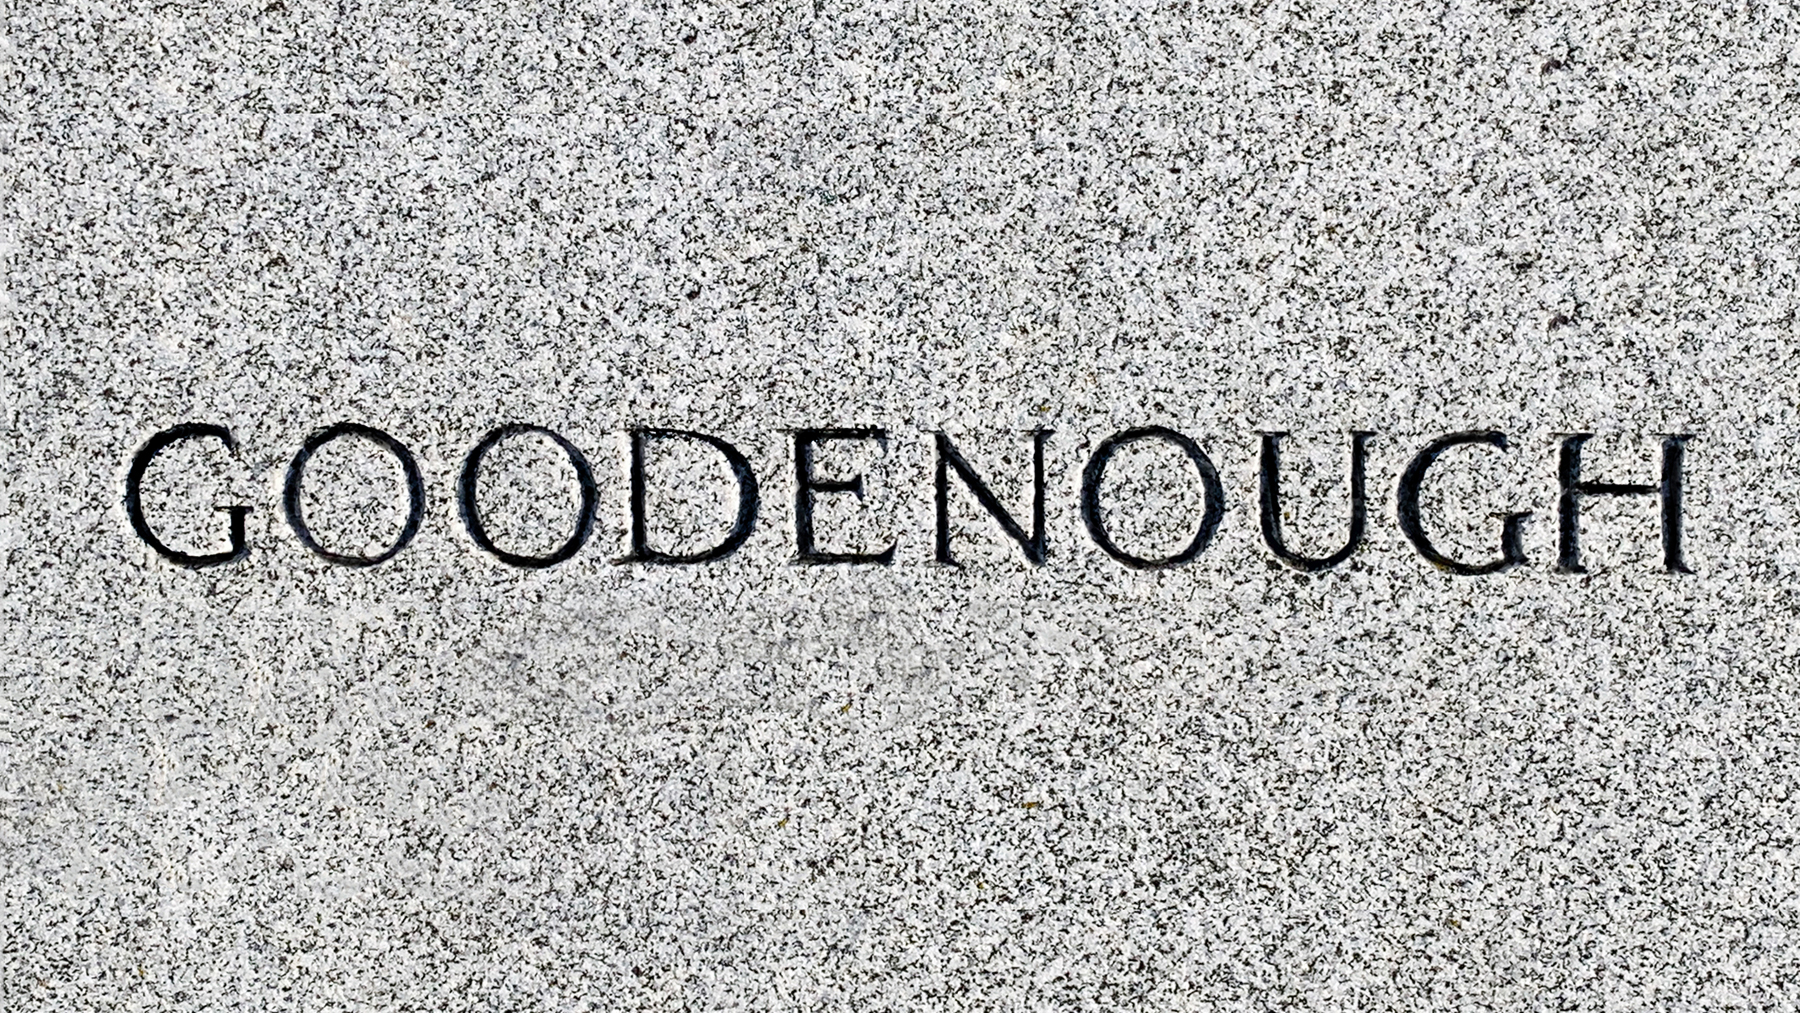 Artist and professor Bea Nettles found this name in a cemetery in Rochester, N.Y., and used it in her 'Head Lines' book.